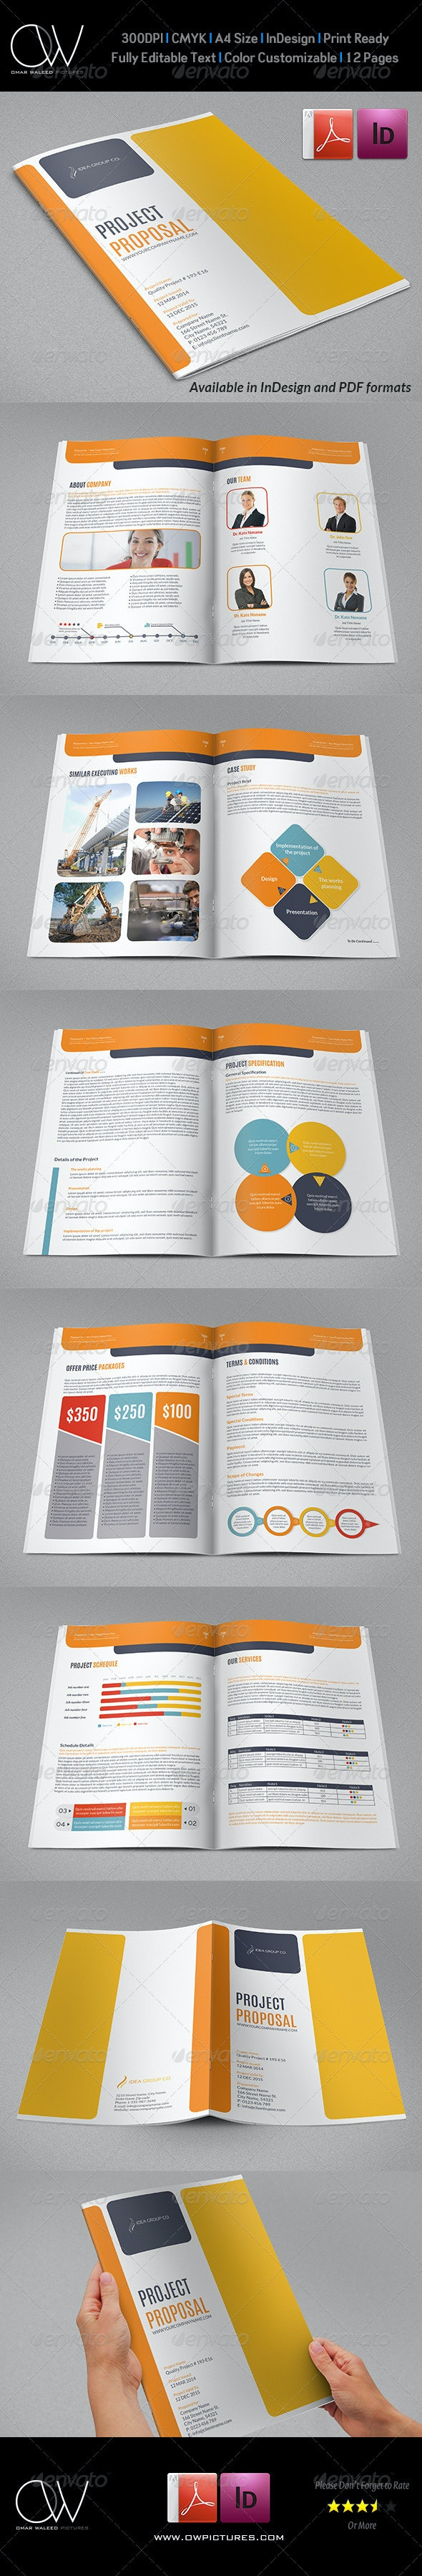 Company Proposal Template Vol.2 - Proposals & Invoices Stationery